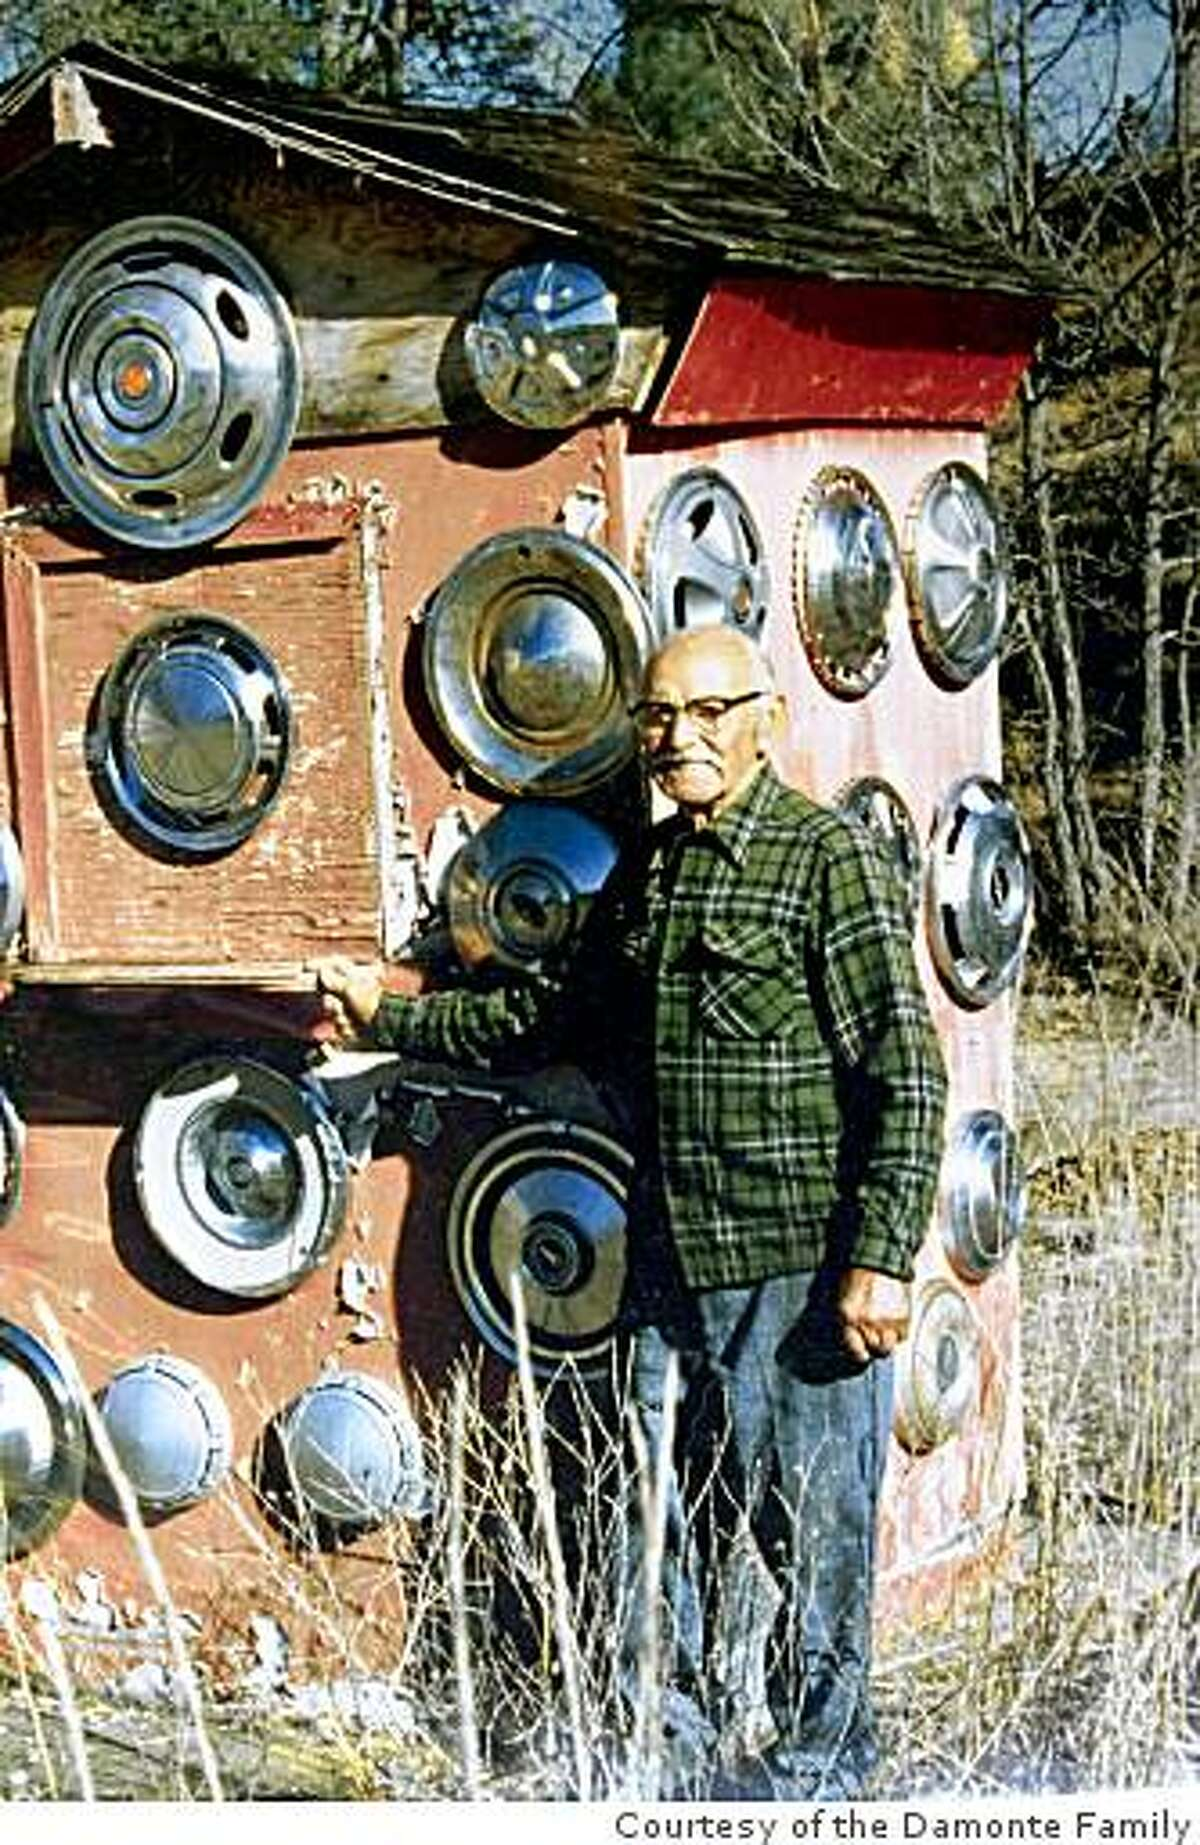 Litto Damonte (1892-1985) started collecting hubcaps on his Pope Valley ranch. Presently, they now have 5,000 and it's become a quirky roadside attrcation. People make pilgrimiges with sacks of hupcaps to Pope Valley, Calif.